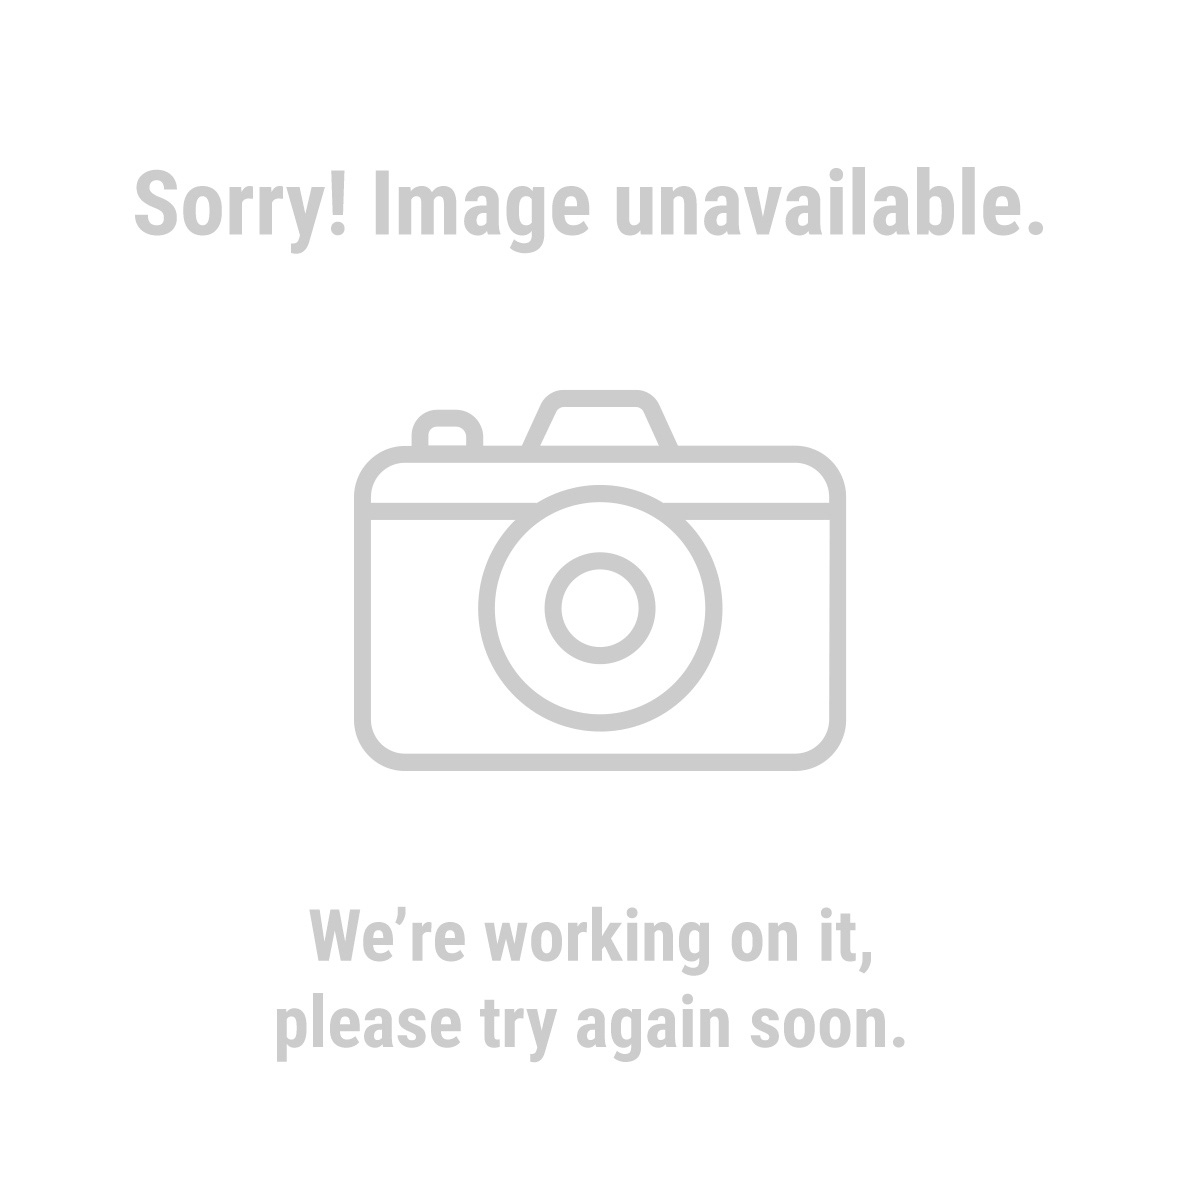 U.S. General® 61952 26 in. 4 Drawer 580 lb. Capacity Glossy Black Roller Cart